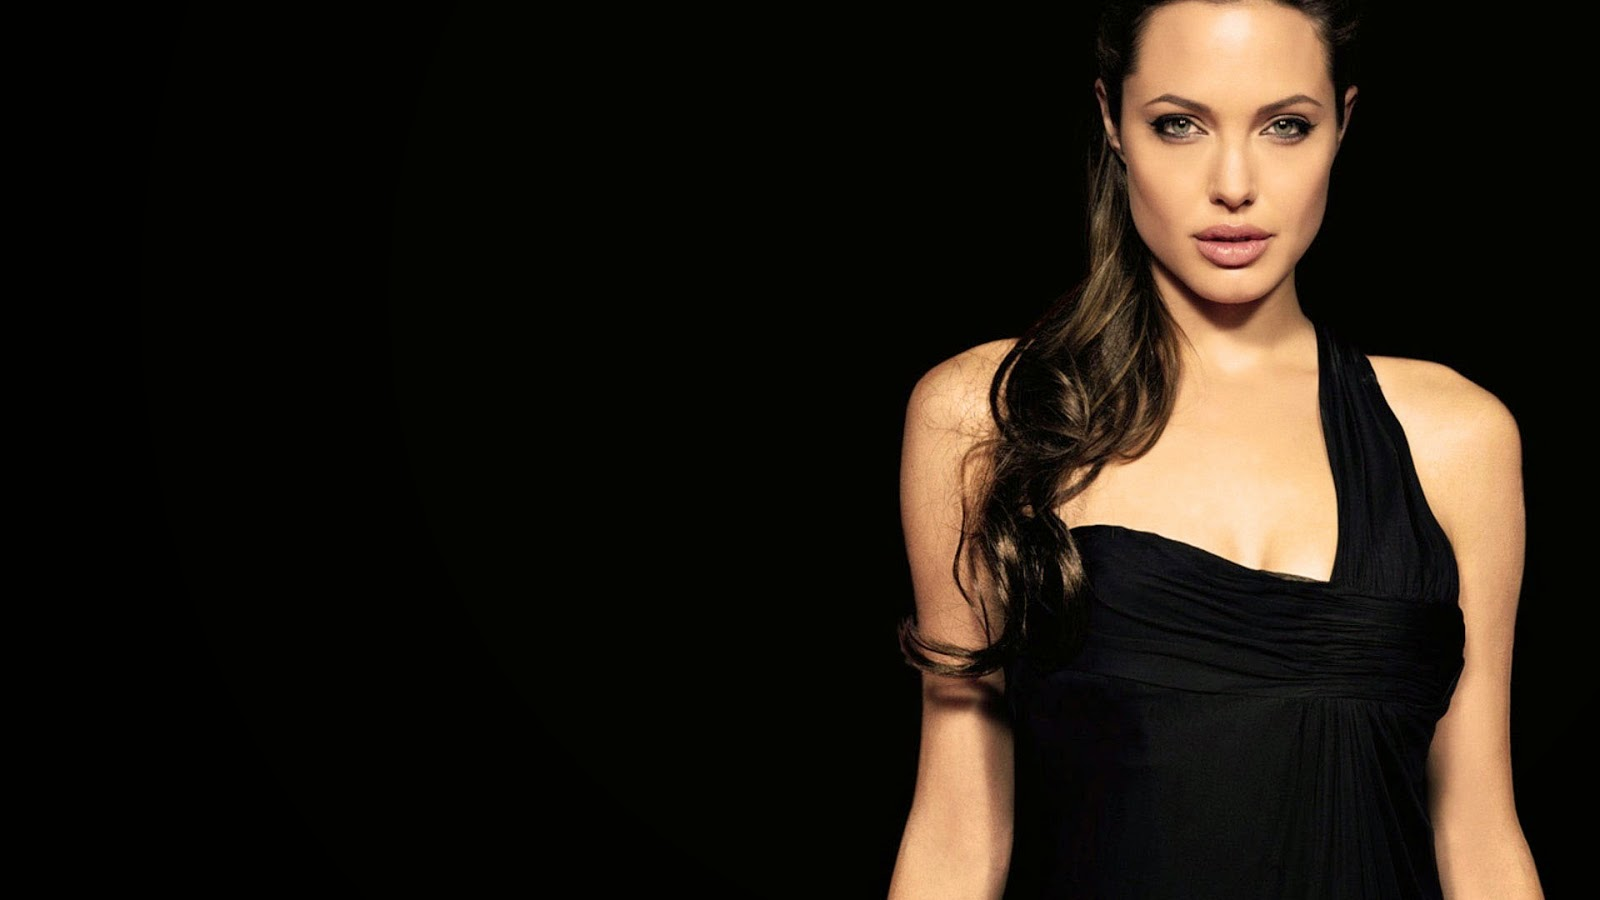 Hollywood Actress Angelina Jolie in black bikini Wallpaper